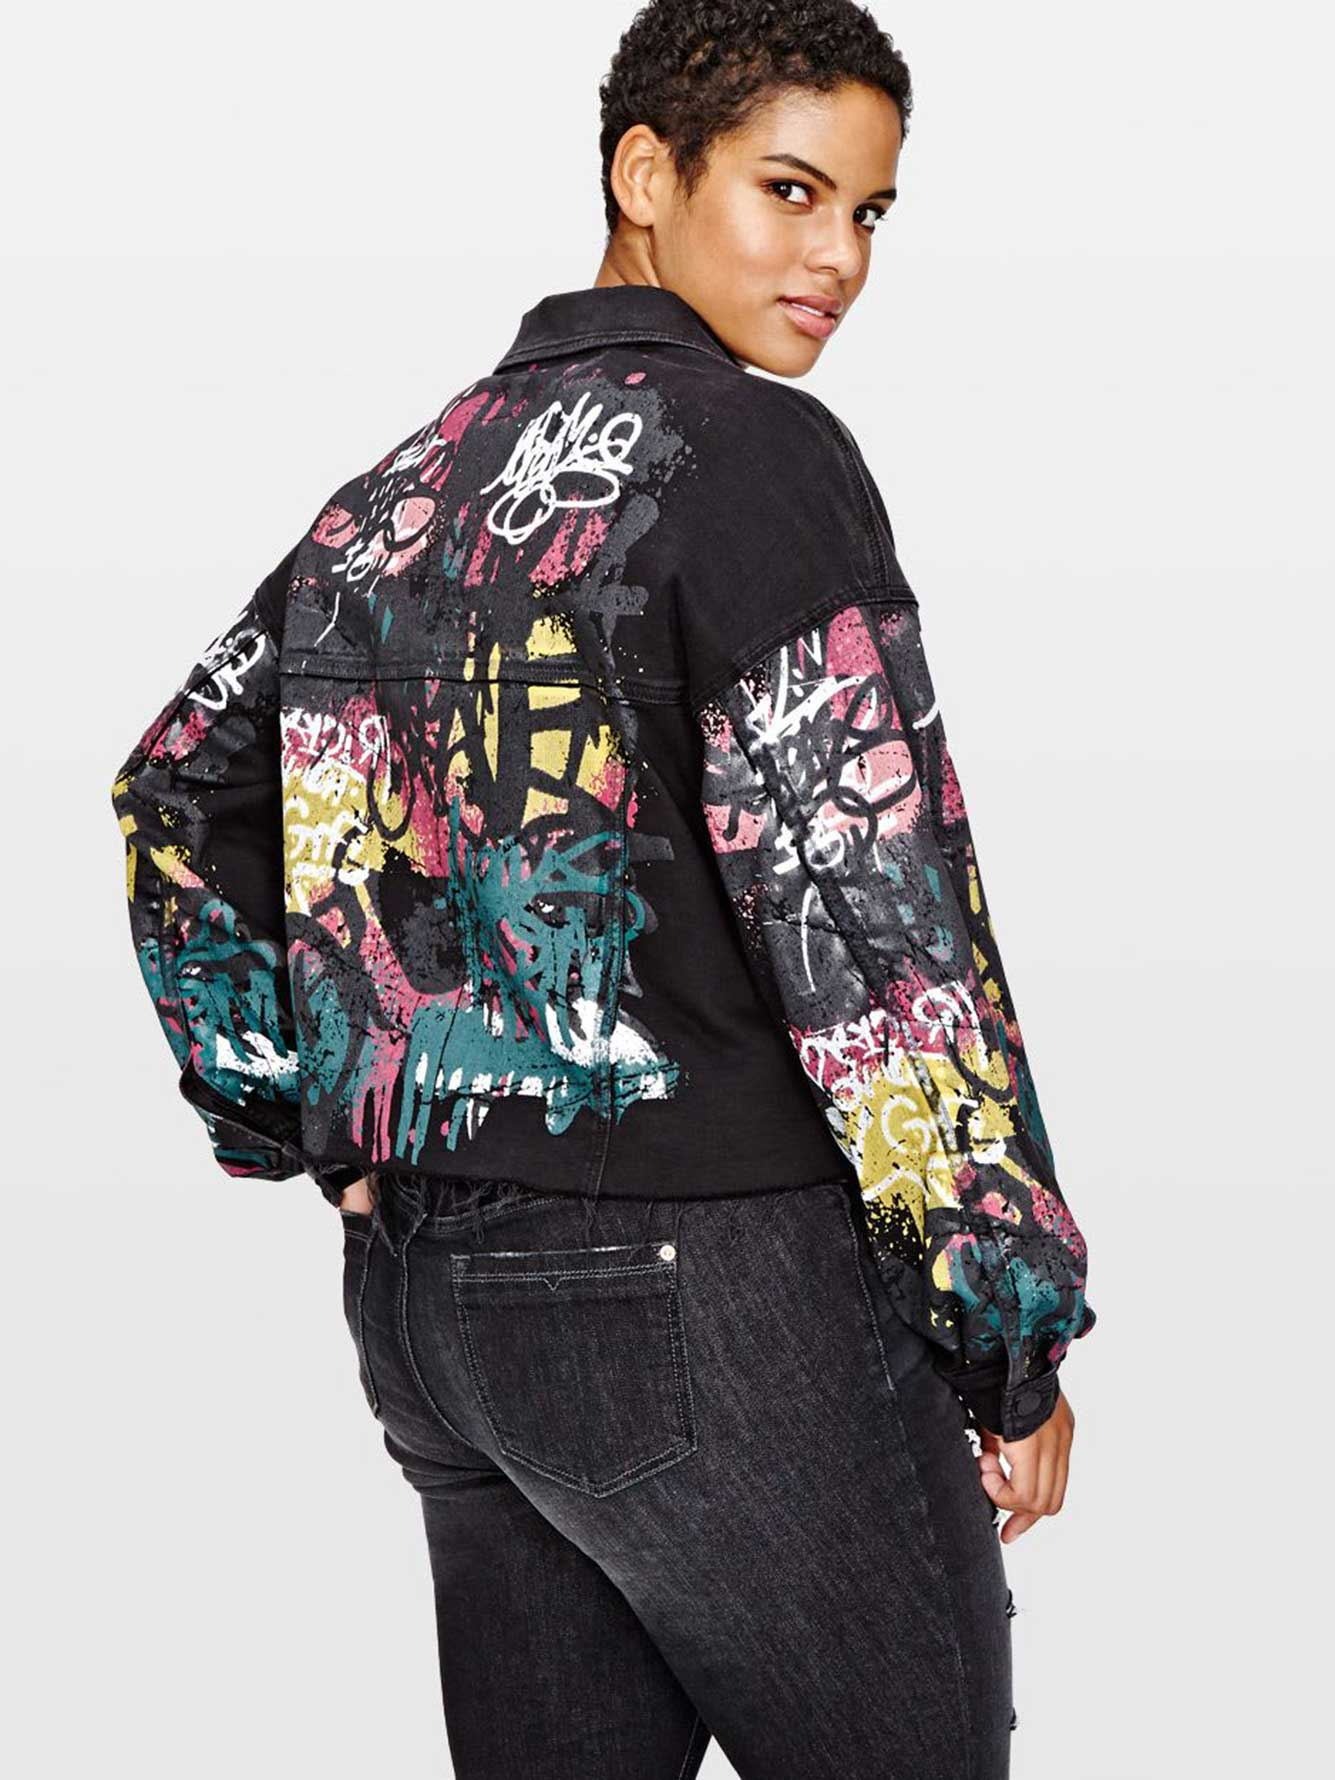 L&L Cropped Denim Jacket with Graffiti Print